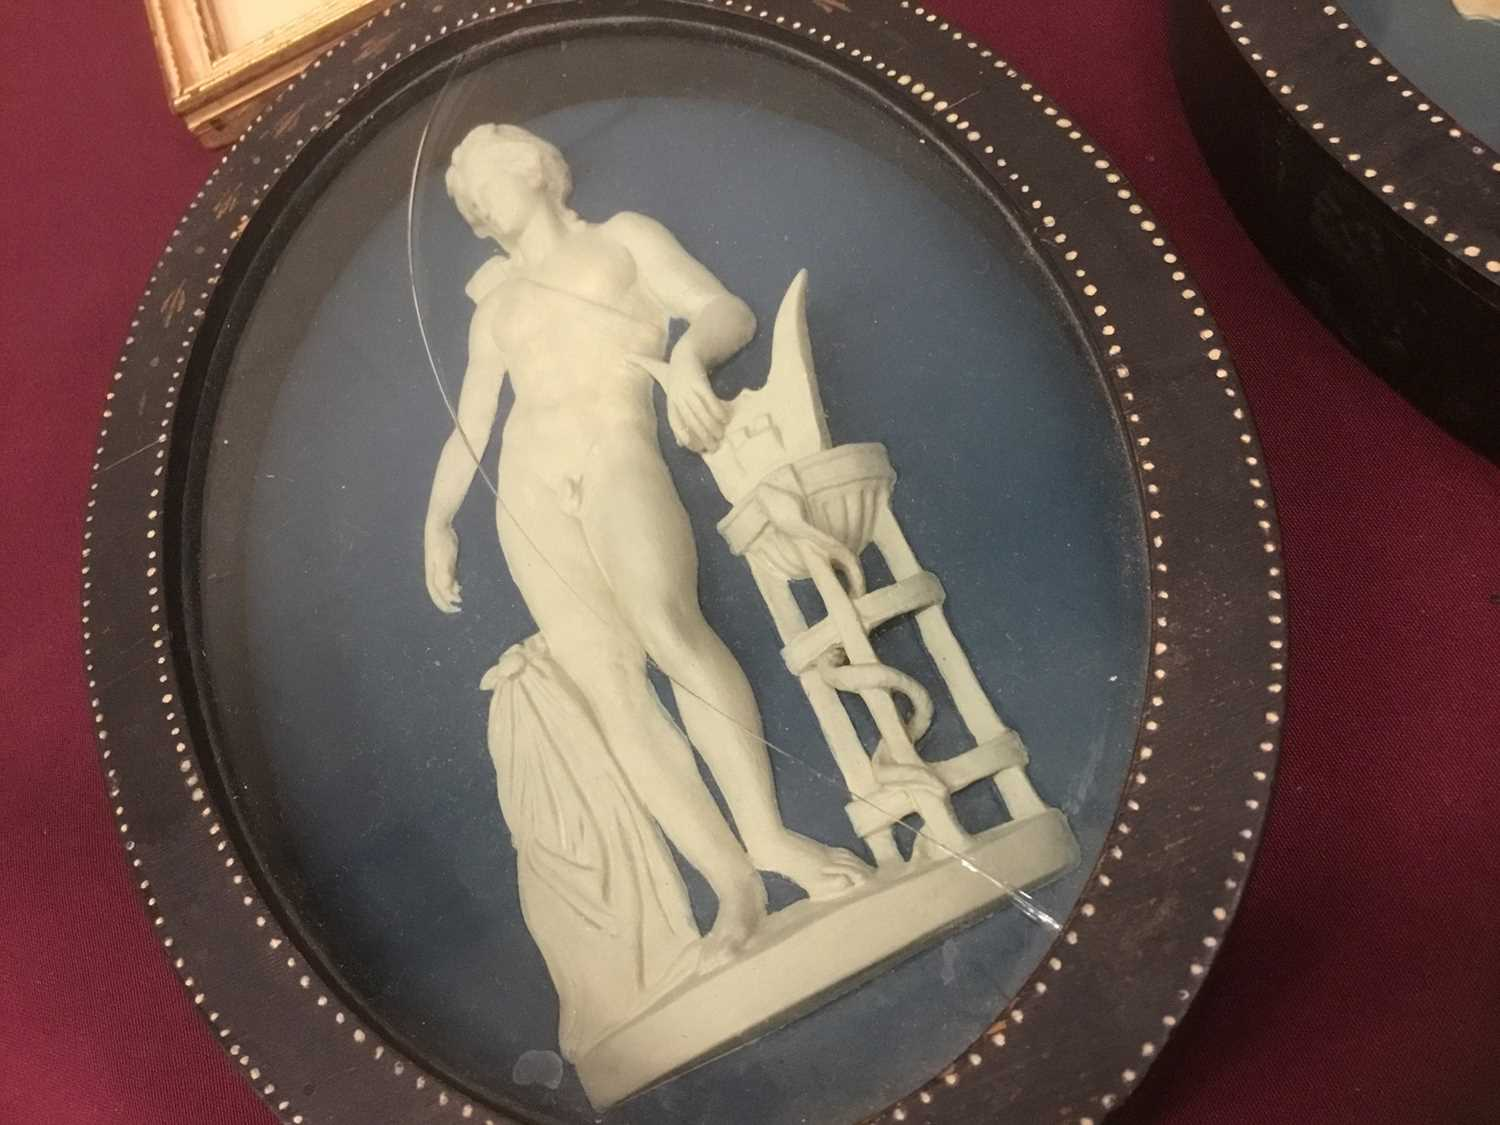 Pair of late 18th/early 19th century composition oval relief plaques depicting classical figures, in - Image 2 of 11